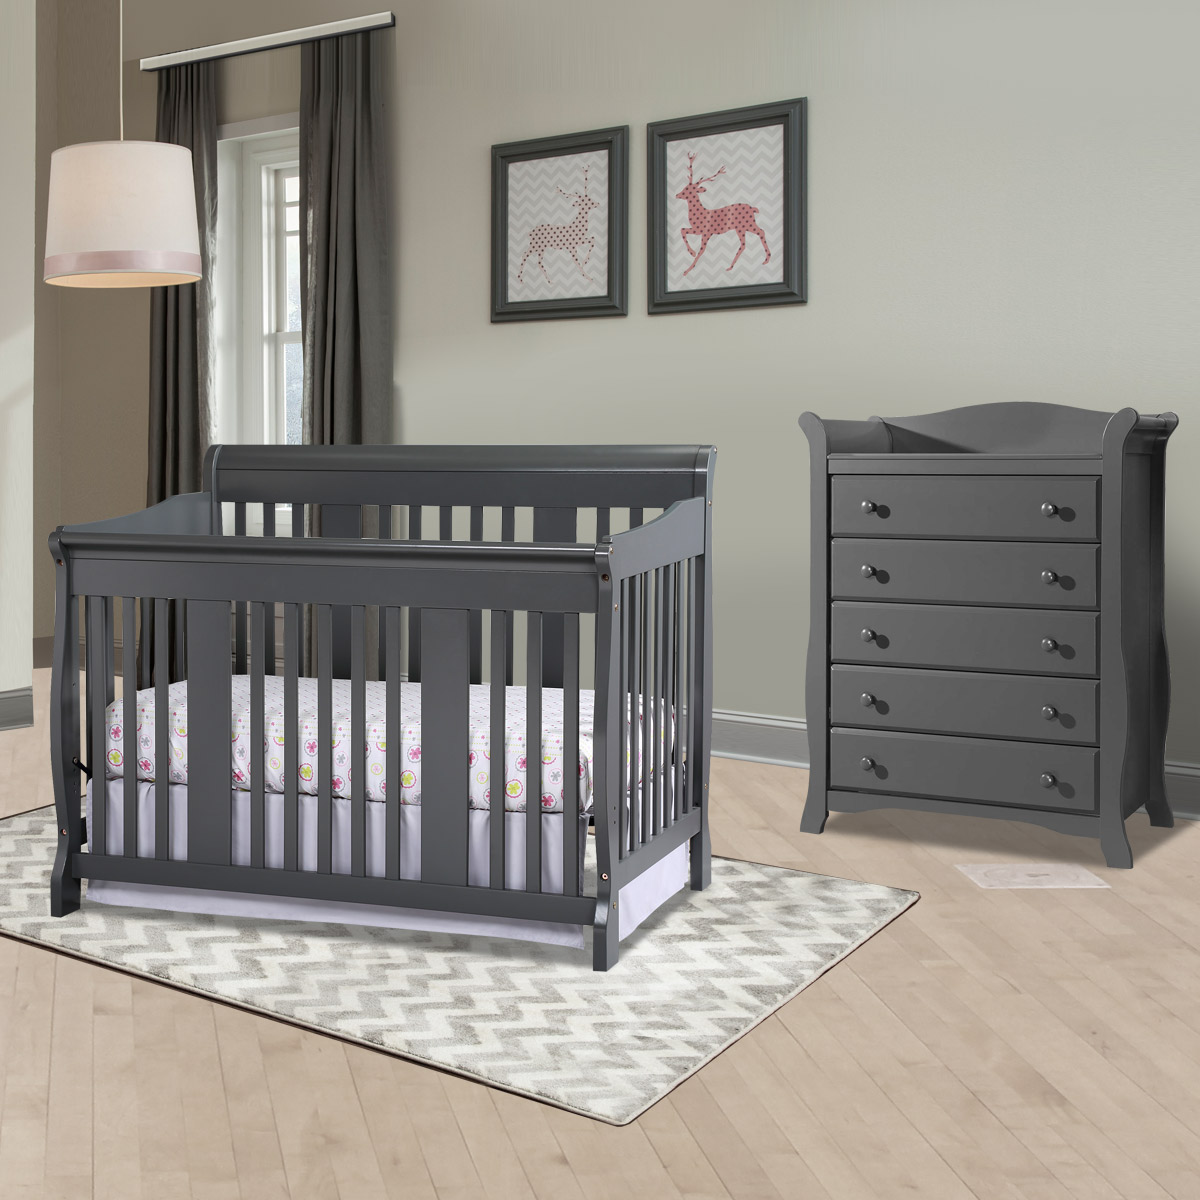 Storkcraft Tuscany 2 Piece Nursery Set Convertible Crib And Avalon 5 Drawer Dresser In Gray Free Shipping